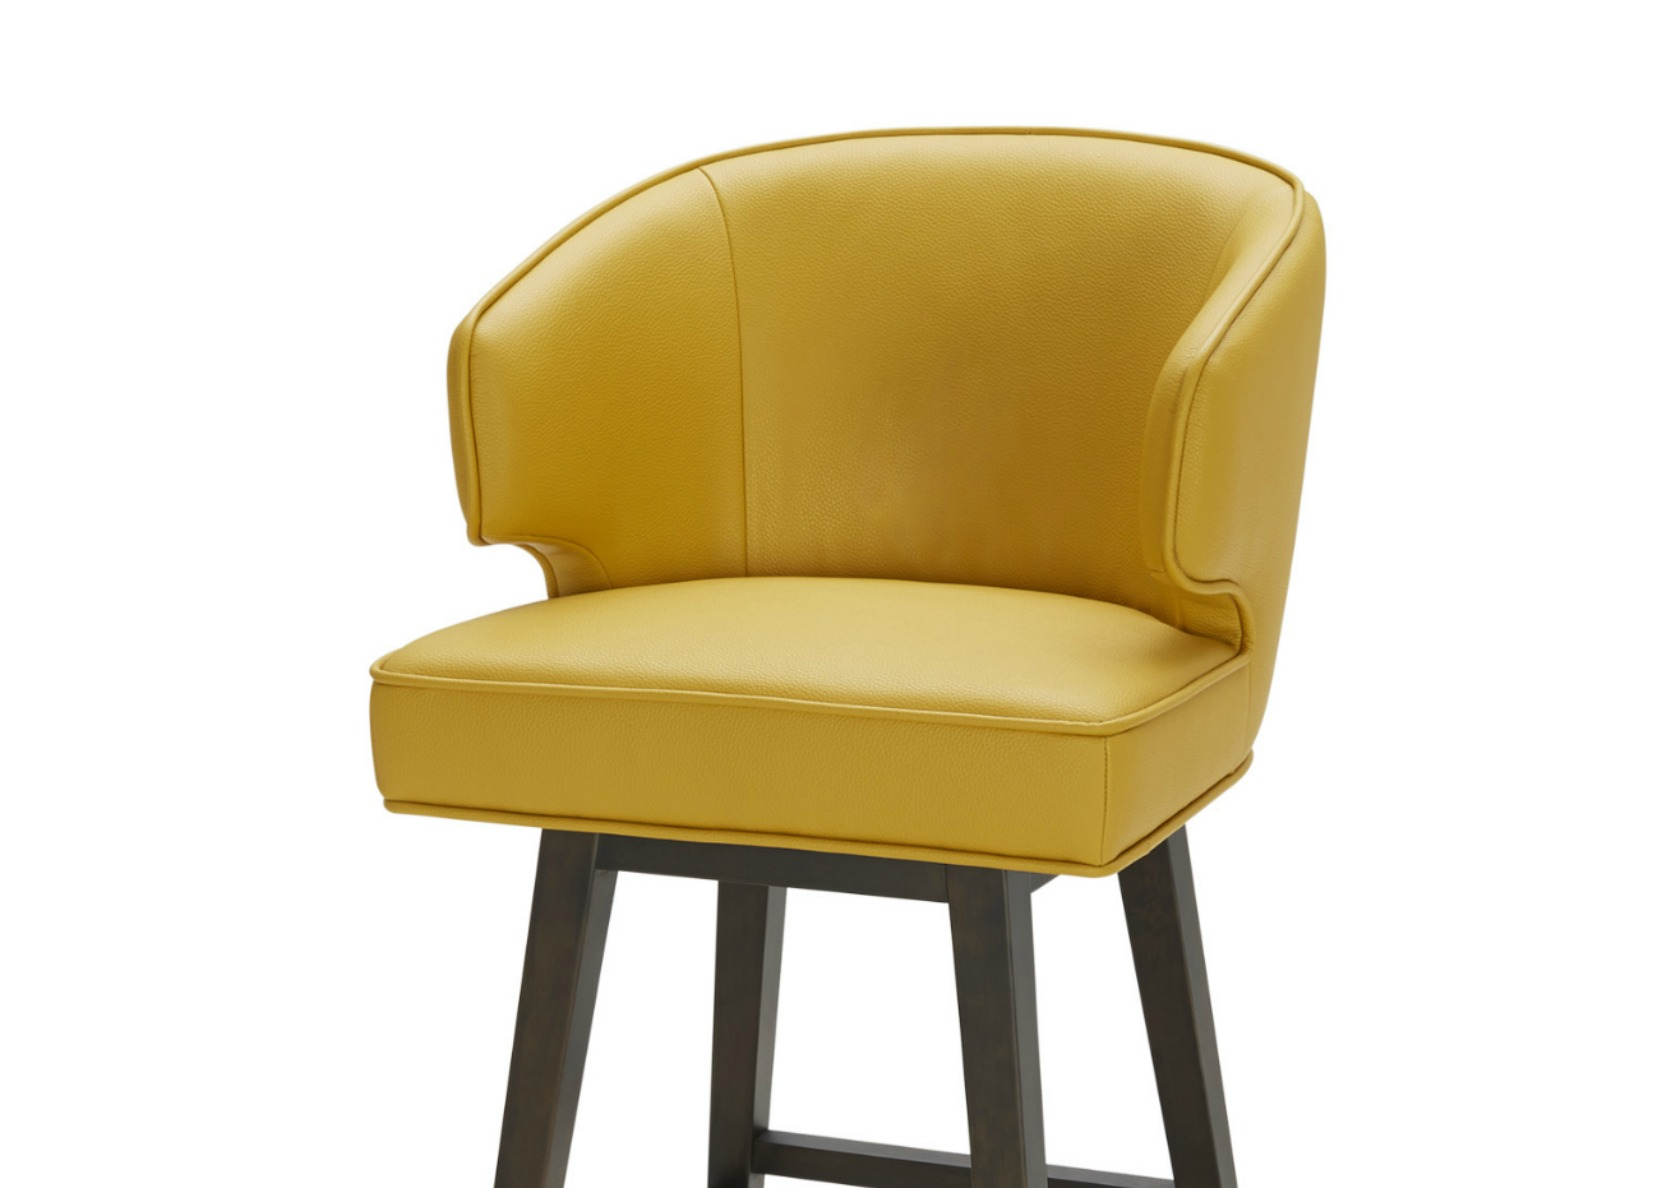 Daisy Bar Stool In Bright Yellow Leather Not Just Brown : Y1152 0 from www.notjustbrown.com size 1662 x 1188 jpeg 153kB